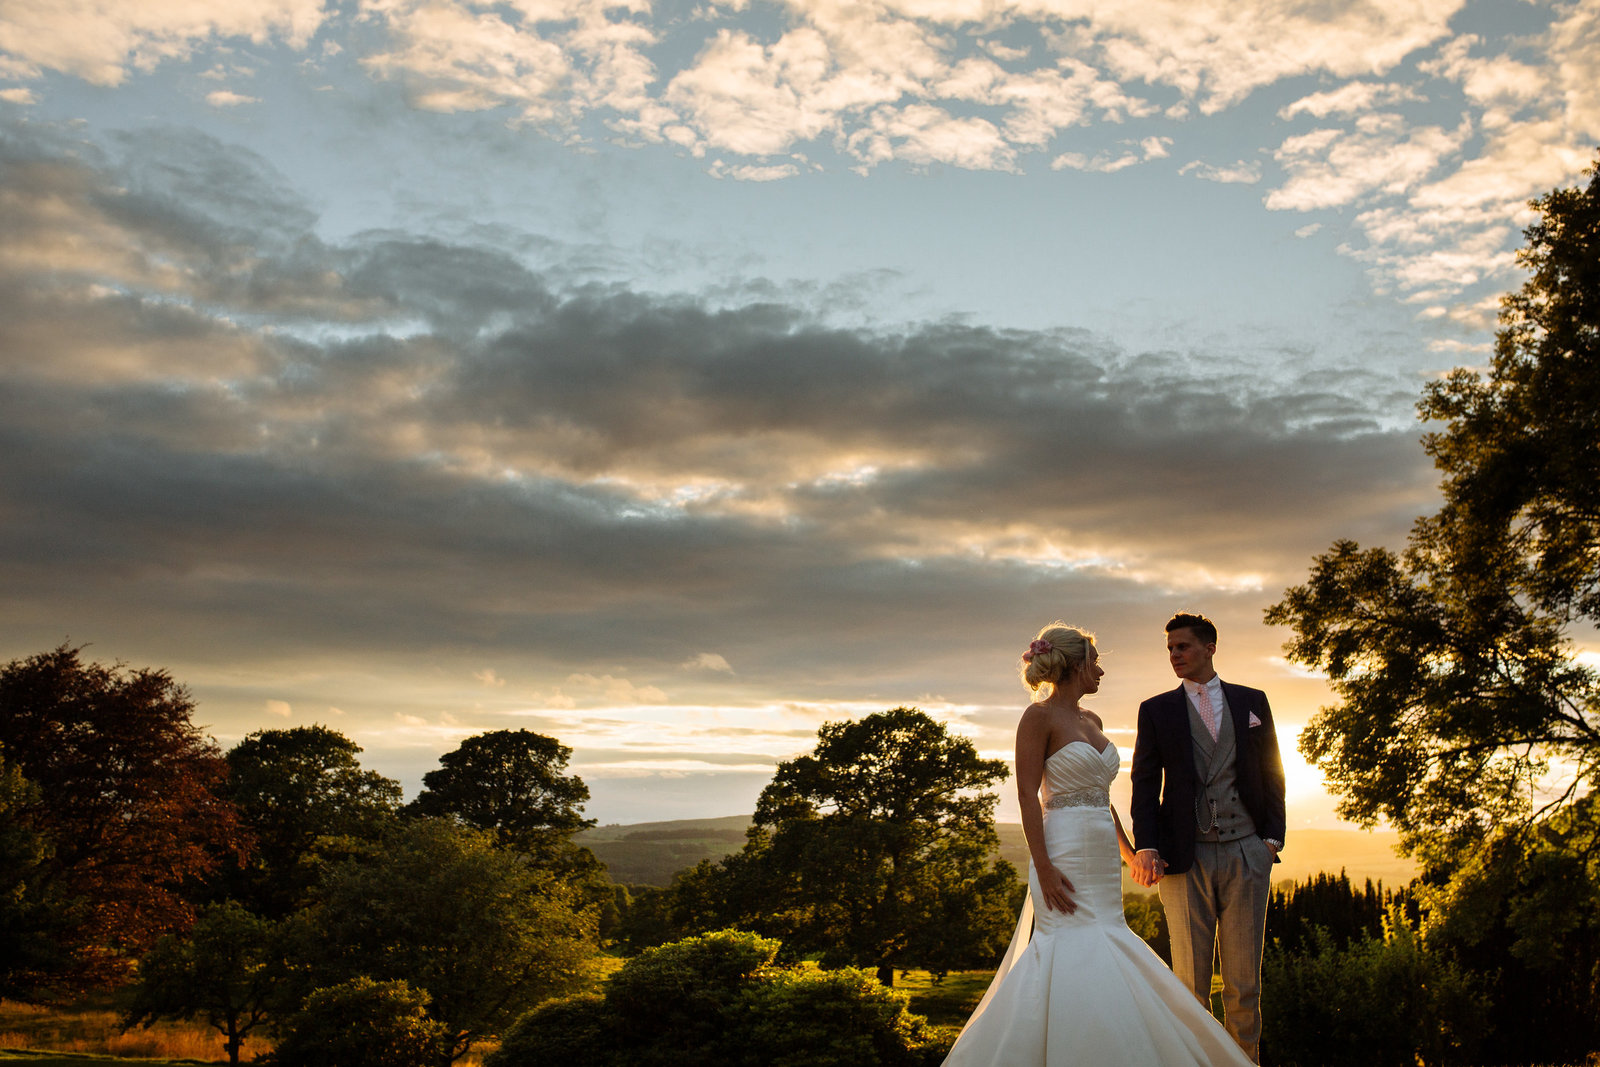 Bride and groom at sunset at Whelprigg House. Modern wedding photographer